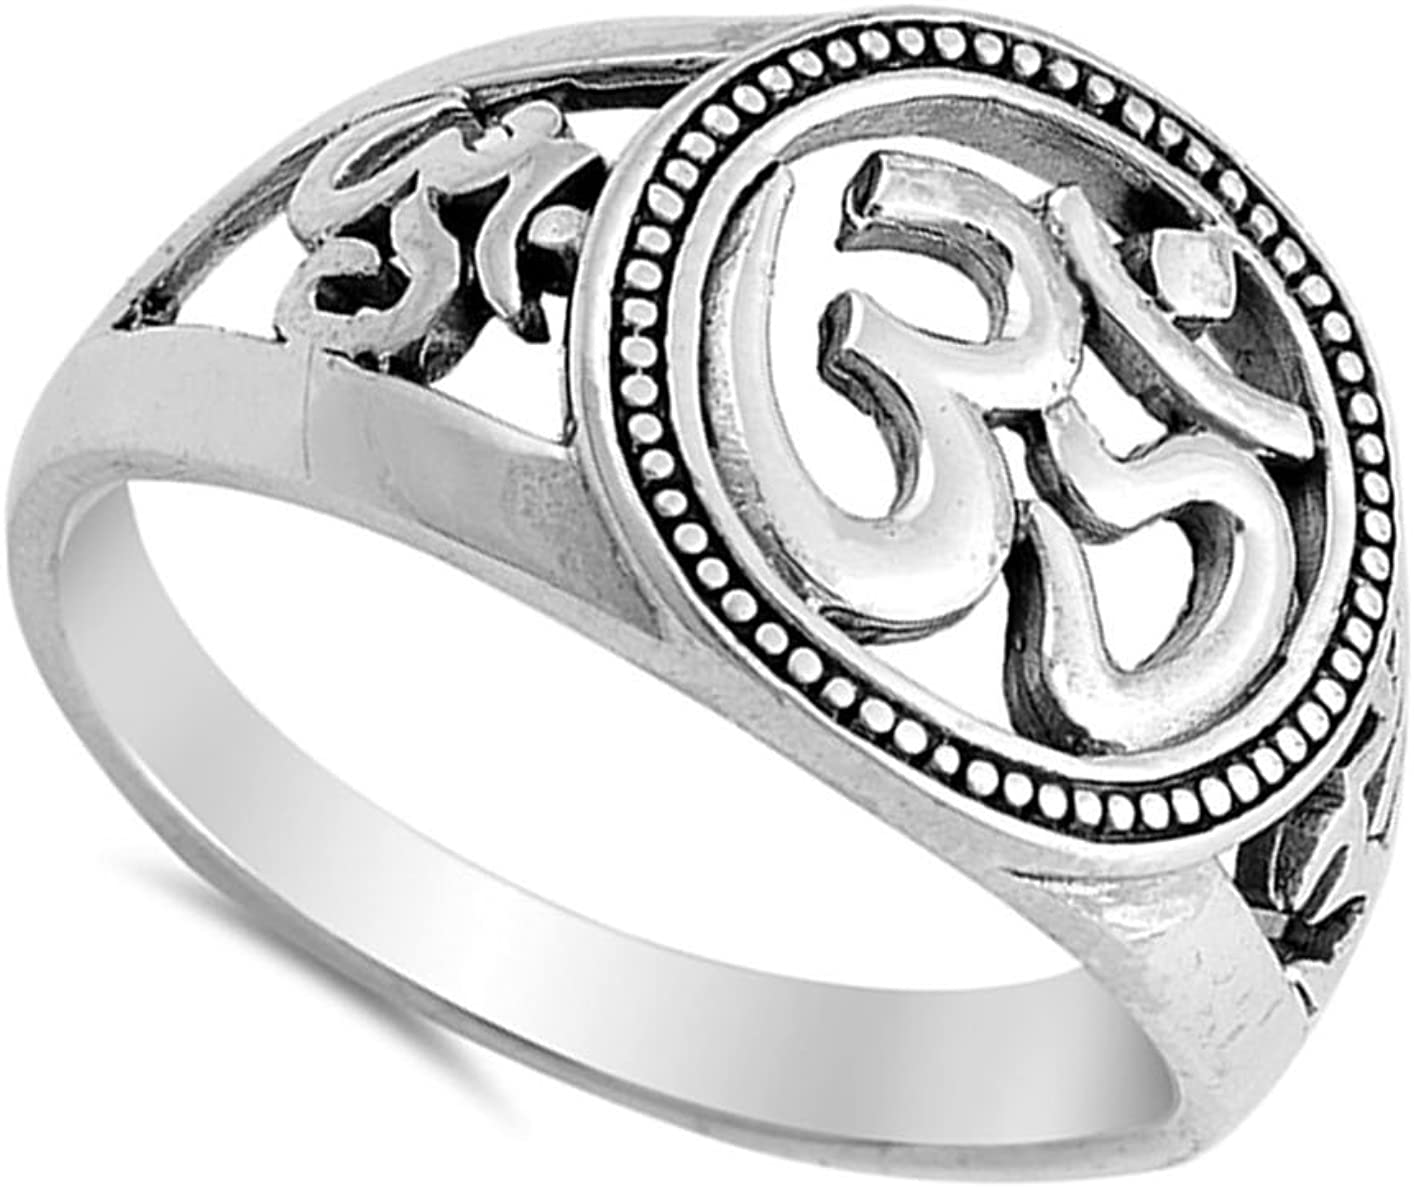 Om Sign Unique Beaded Halo Ring New .925 Sterling Silver Band Sizes 5-10